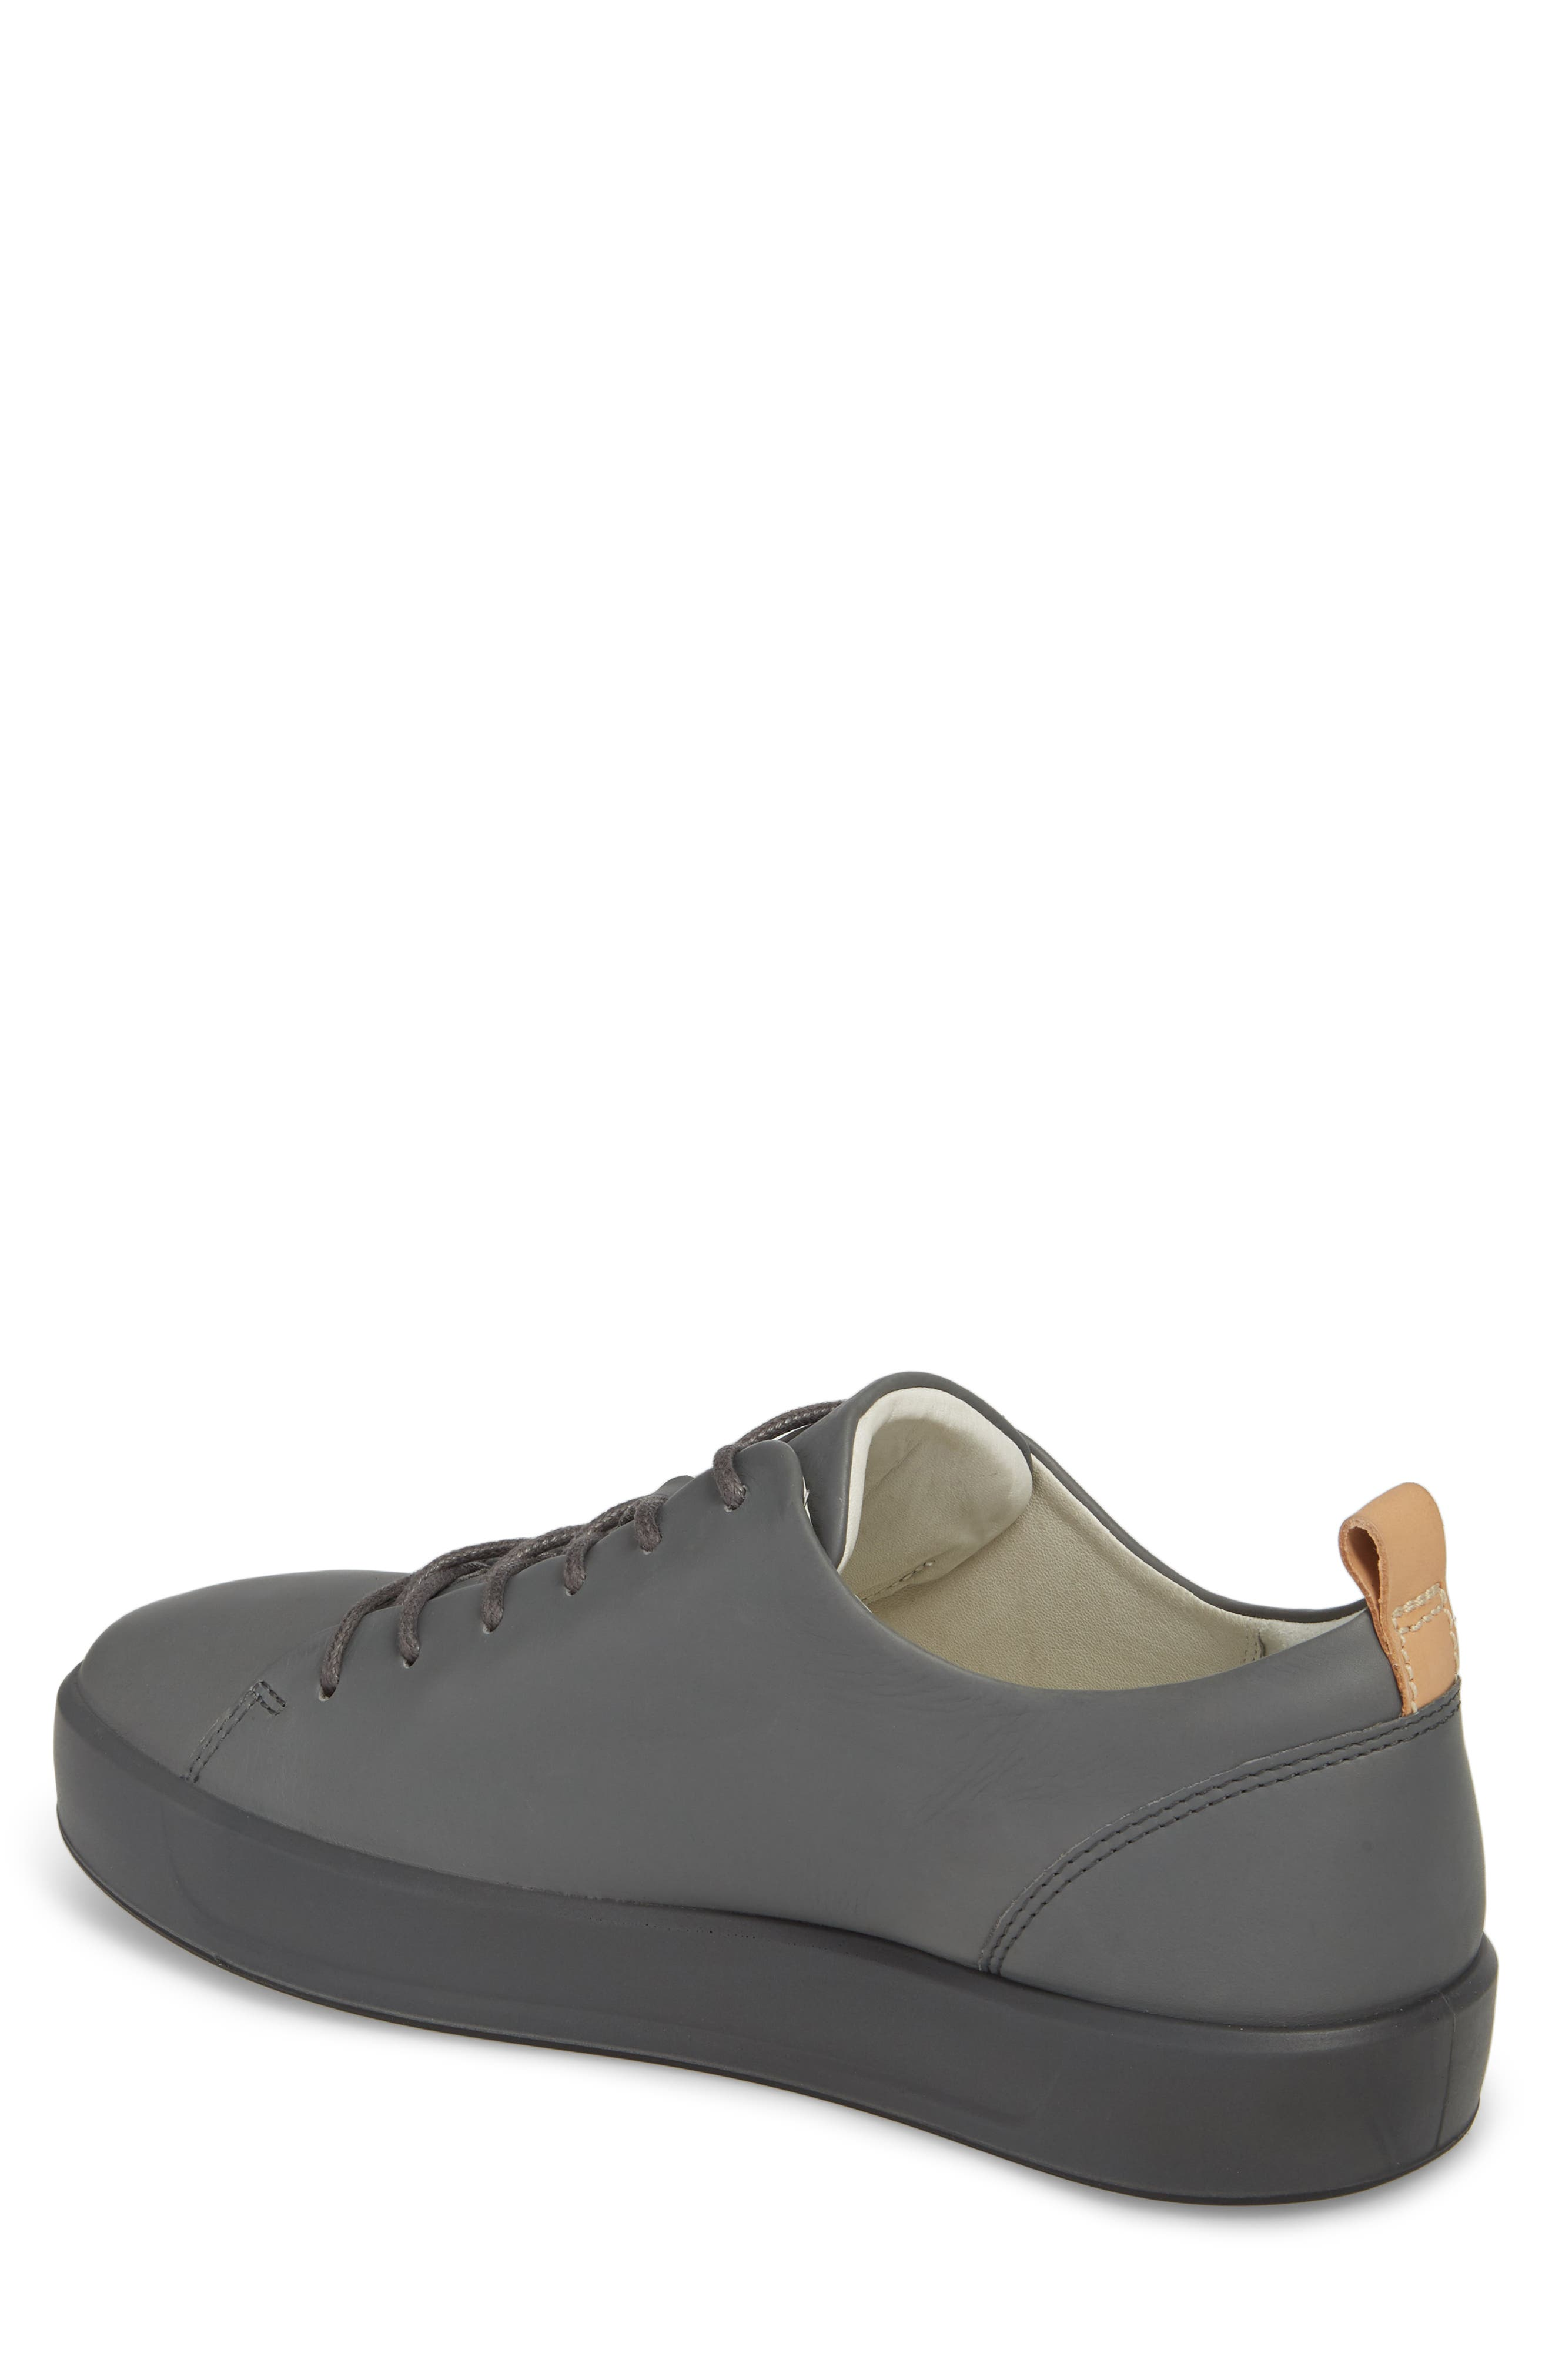 Soft 8 Low Top Sneaker,                             Alternate thumbnail 2, color,                             068